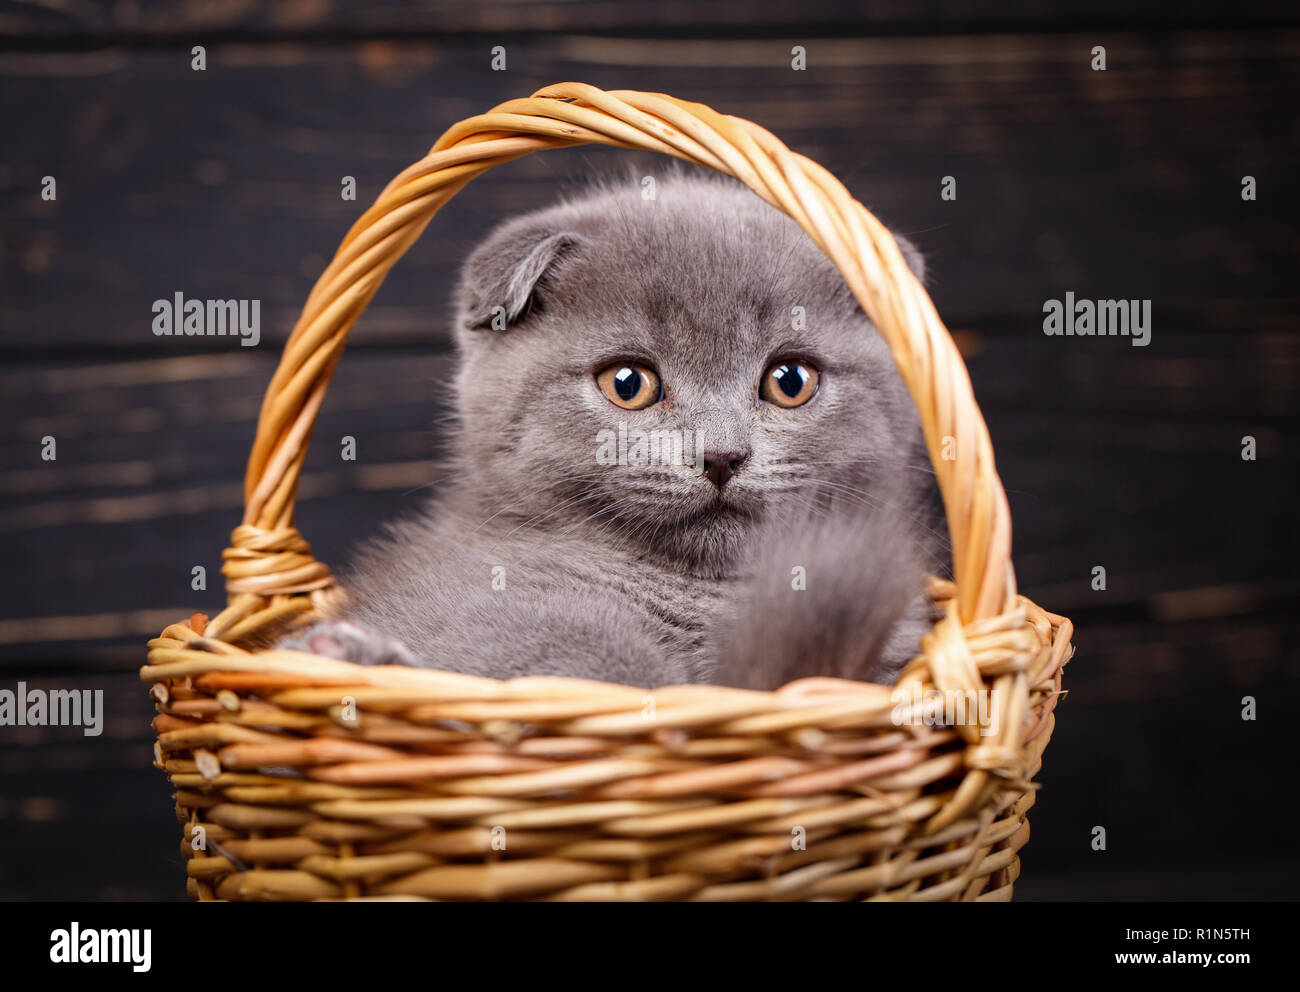 Cat in a wicker basket on a black background - Stock Image